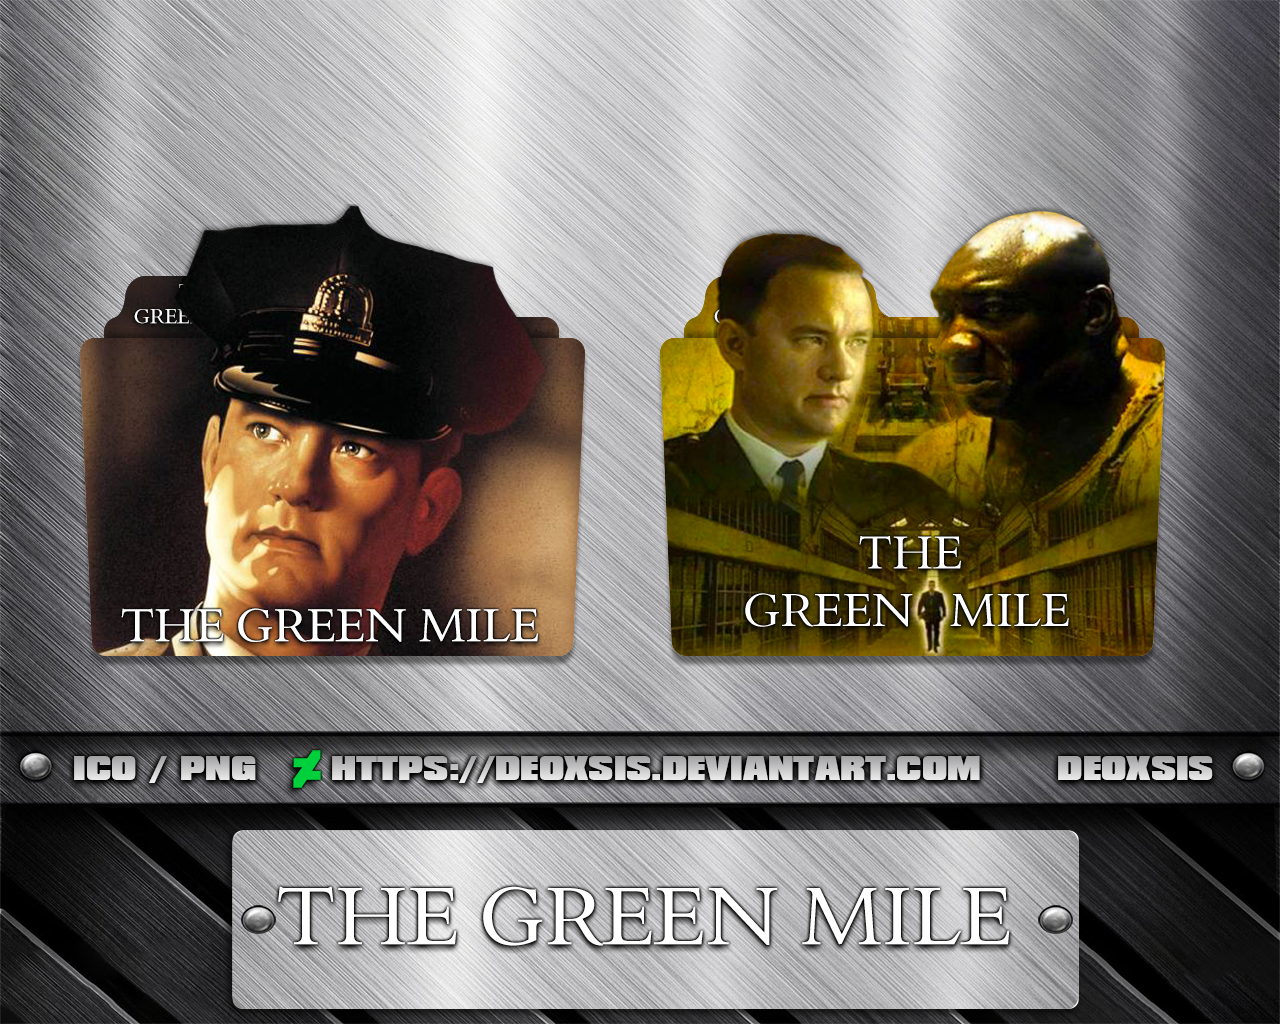 Green Mile 1999 Folder Icon Pack By Deoxsis On Deviantart